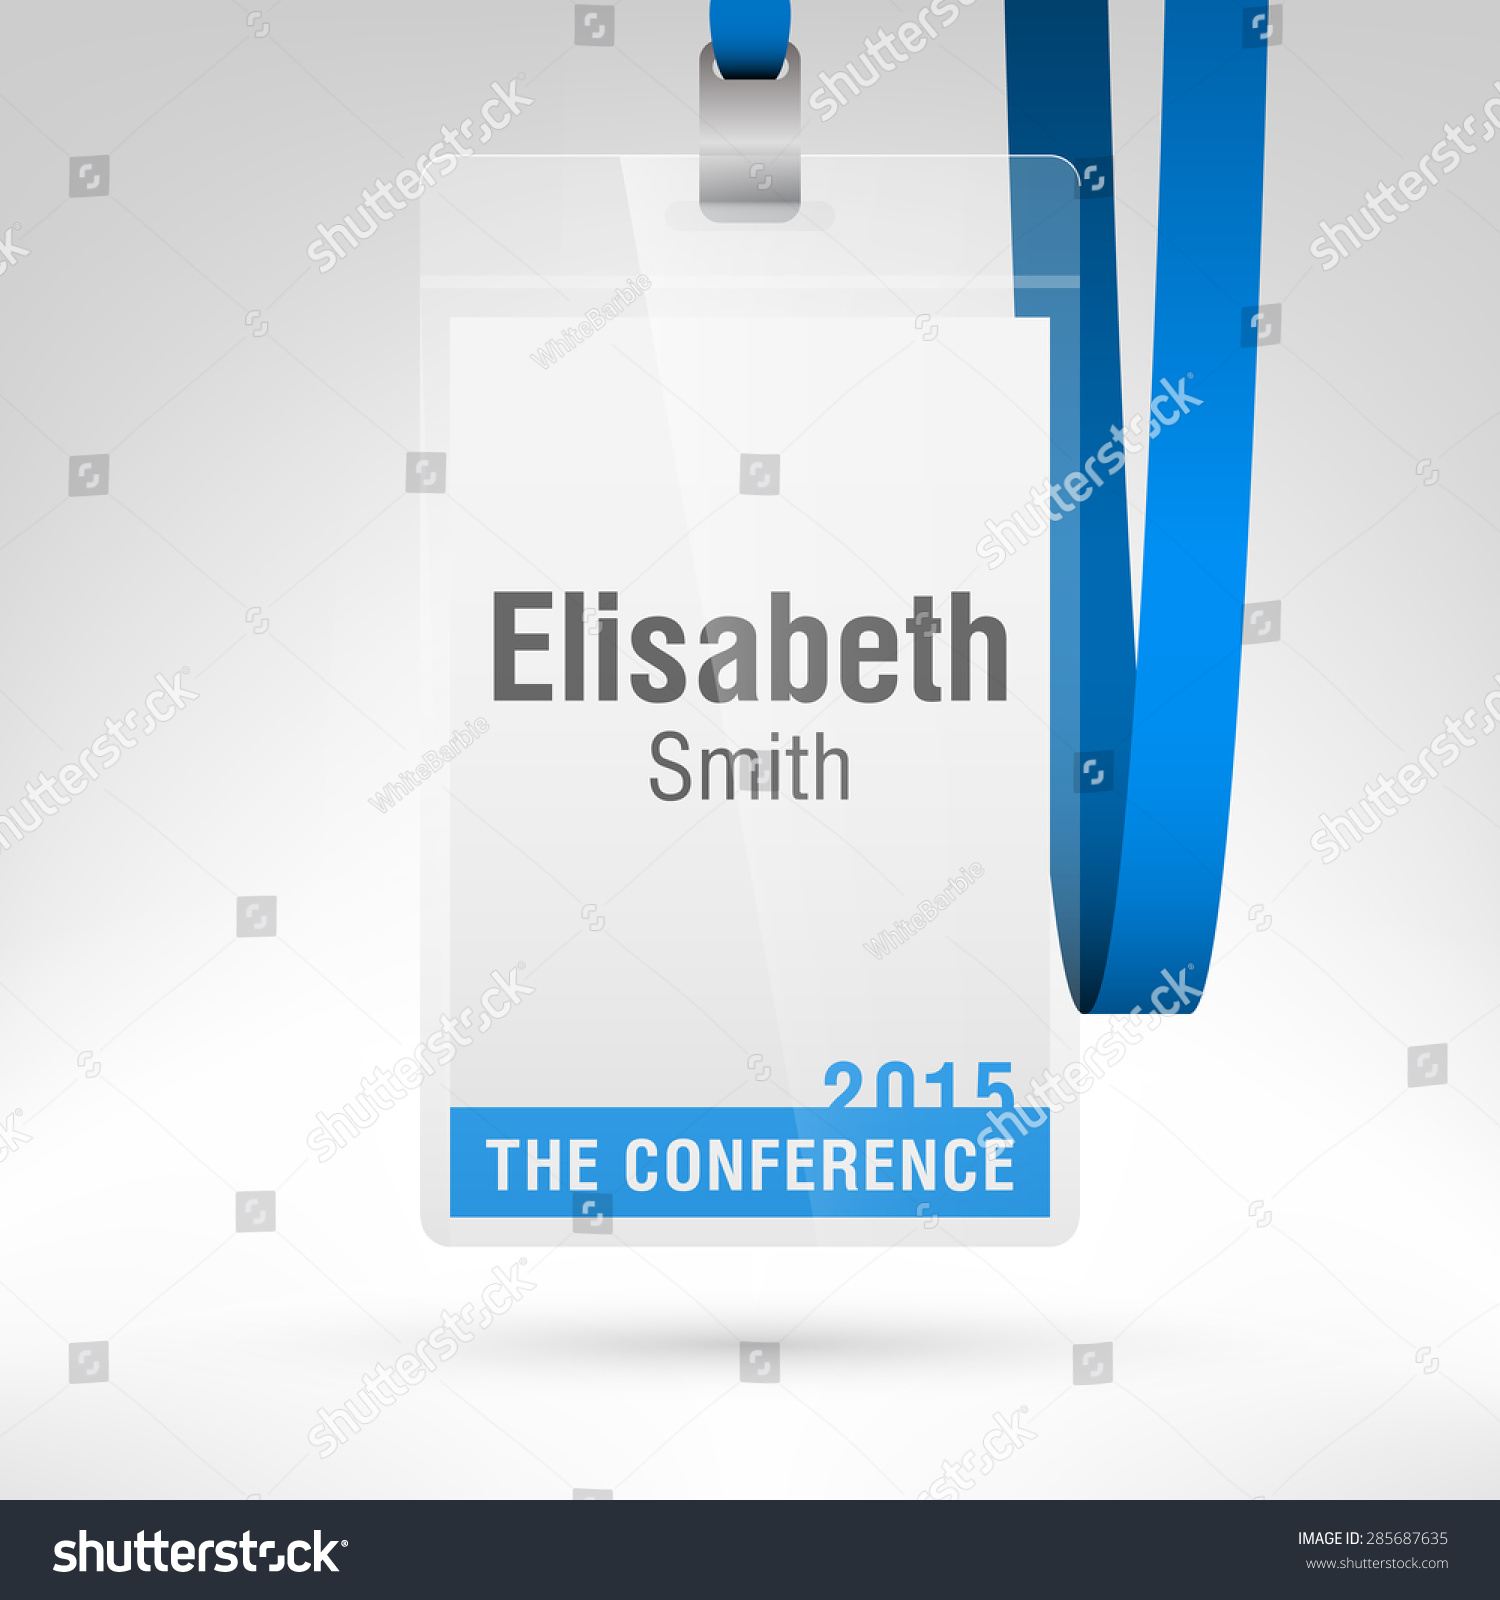 Placeholder Template | Conference Badge Name Tag Placeholder Blank Stock Vector 285687635